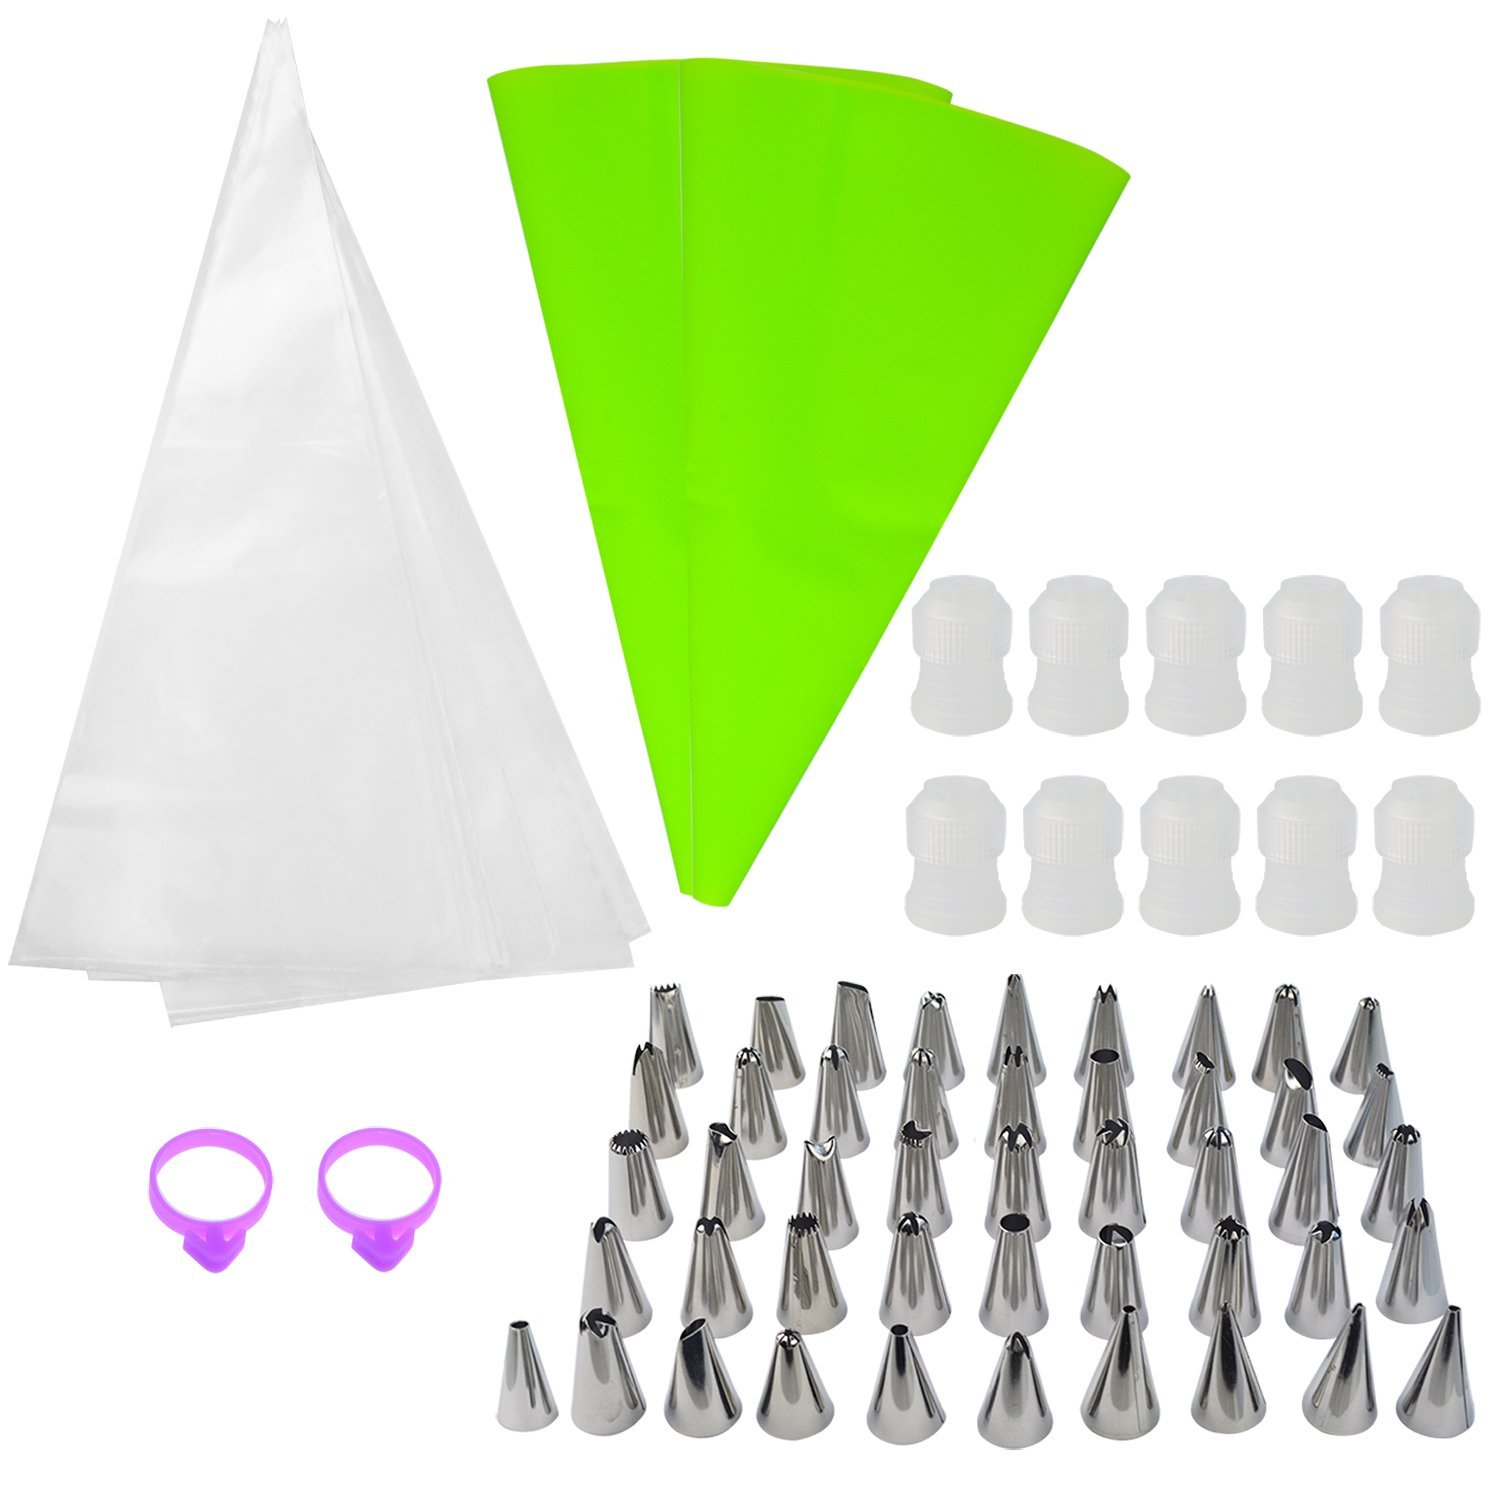 112 Packs Cake Decorating Supplies Kits, Bantoye 48 Pcs Stainless Steel Icing Piping Tips, 50 Pcs Disposable Pastry Bags, 2 Pcs EVA Pastry Bags, 10 Pcs Standard Couplers & 2 Pcs Icing Bag Ties